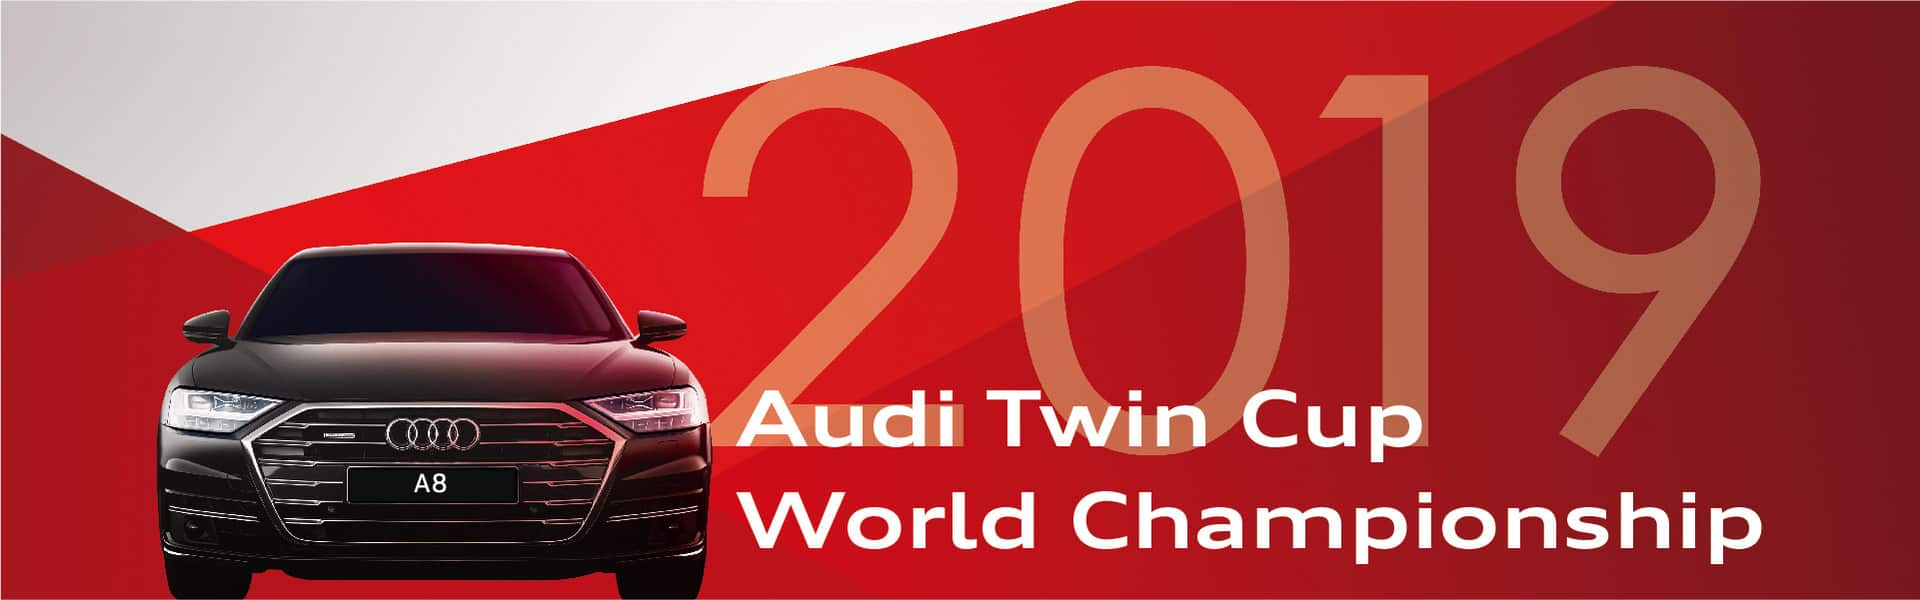 Audi-Twin-Cup-Photo-Production官網_1920x600px_1.jpg